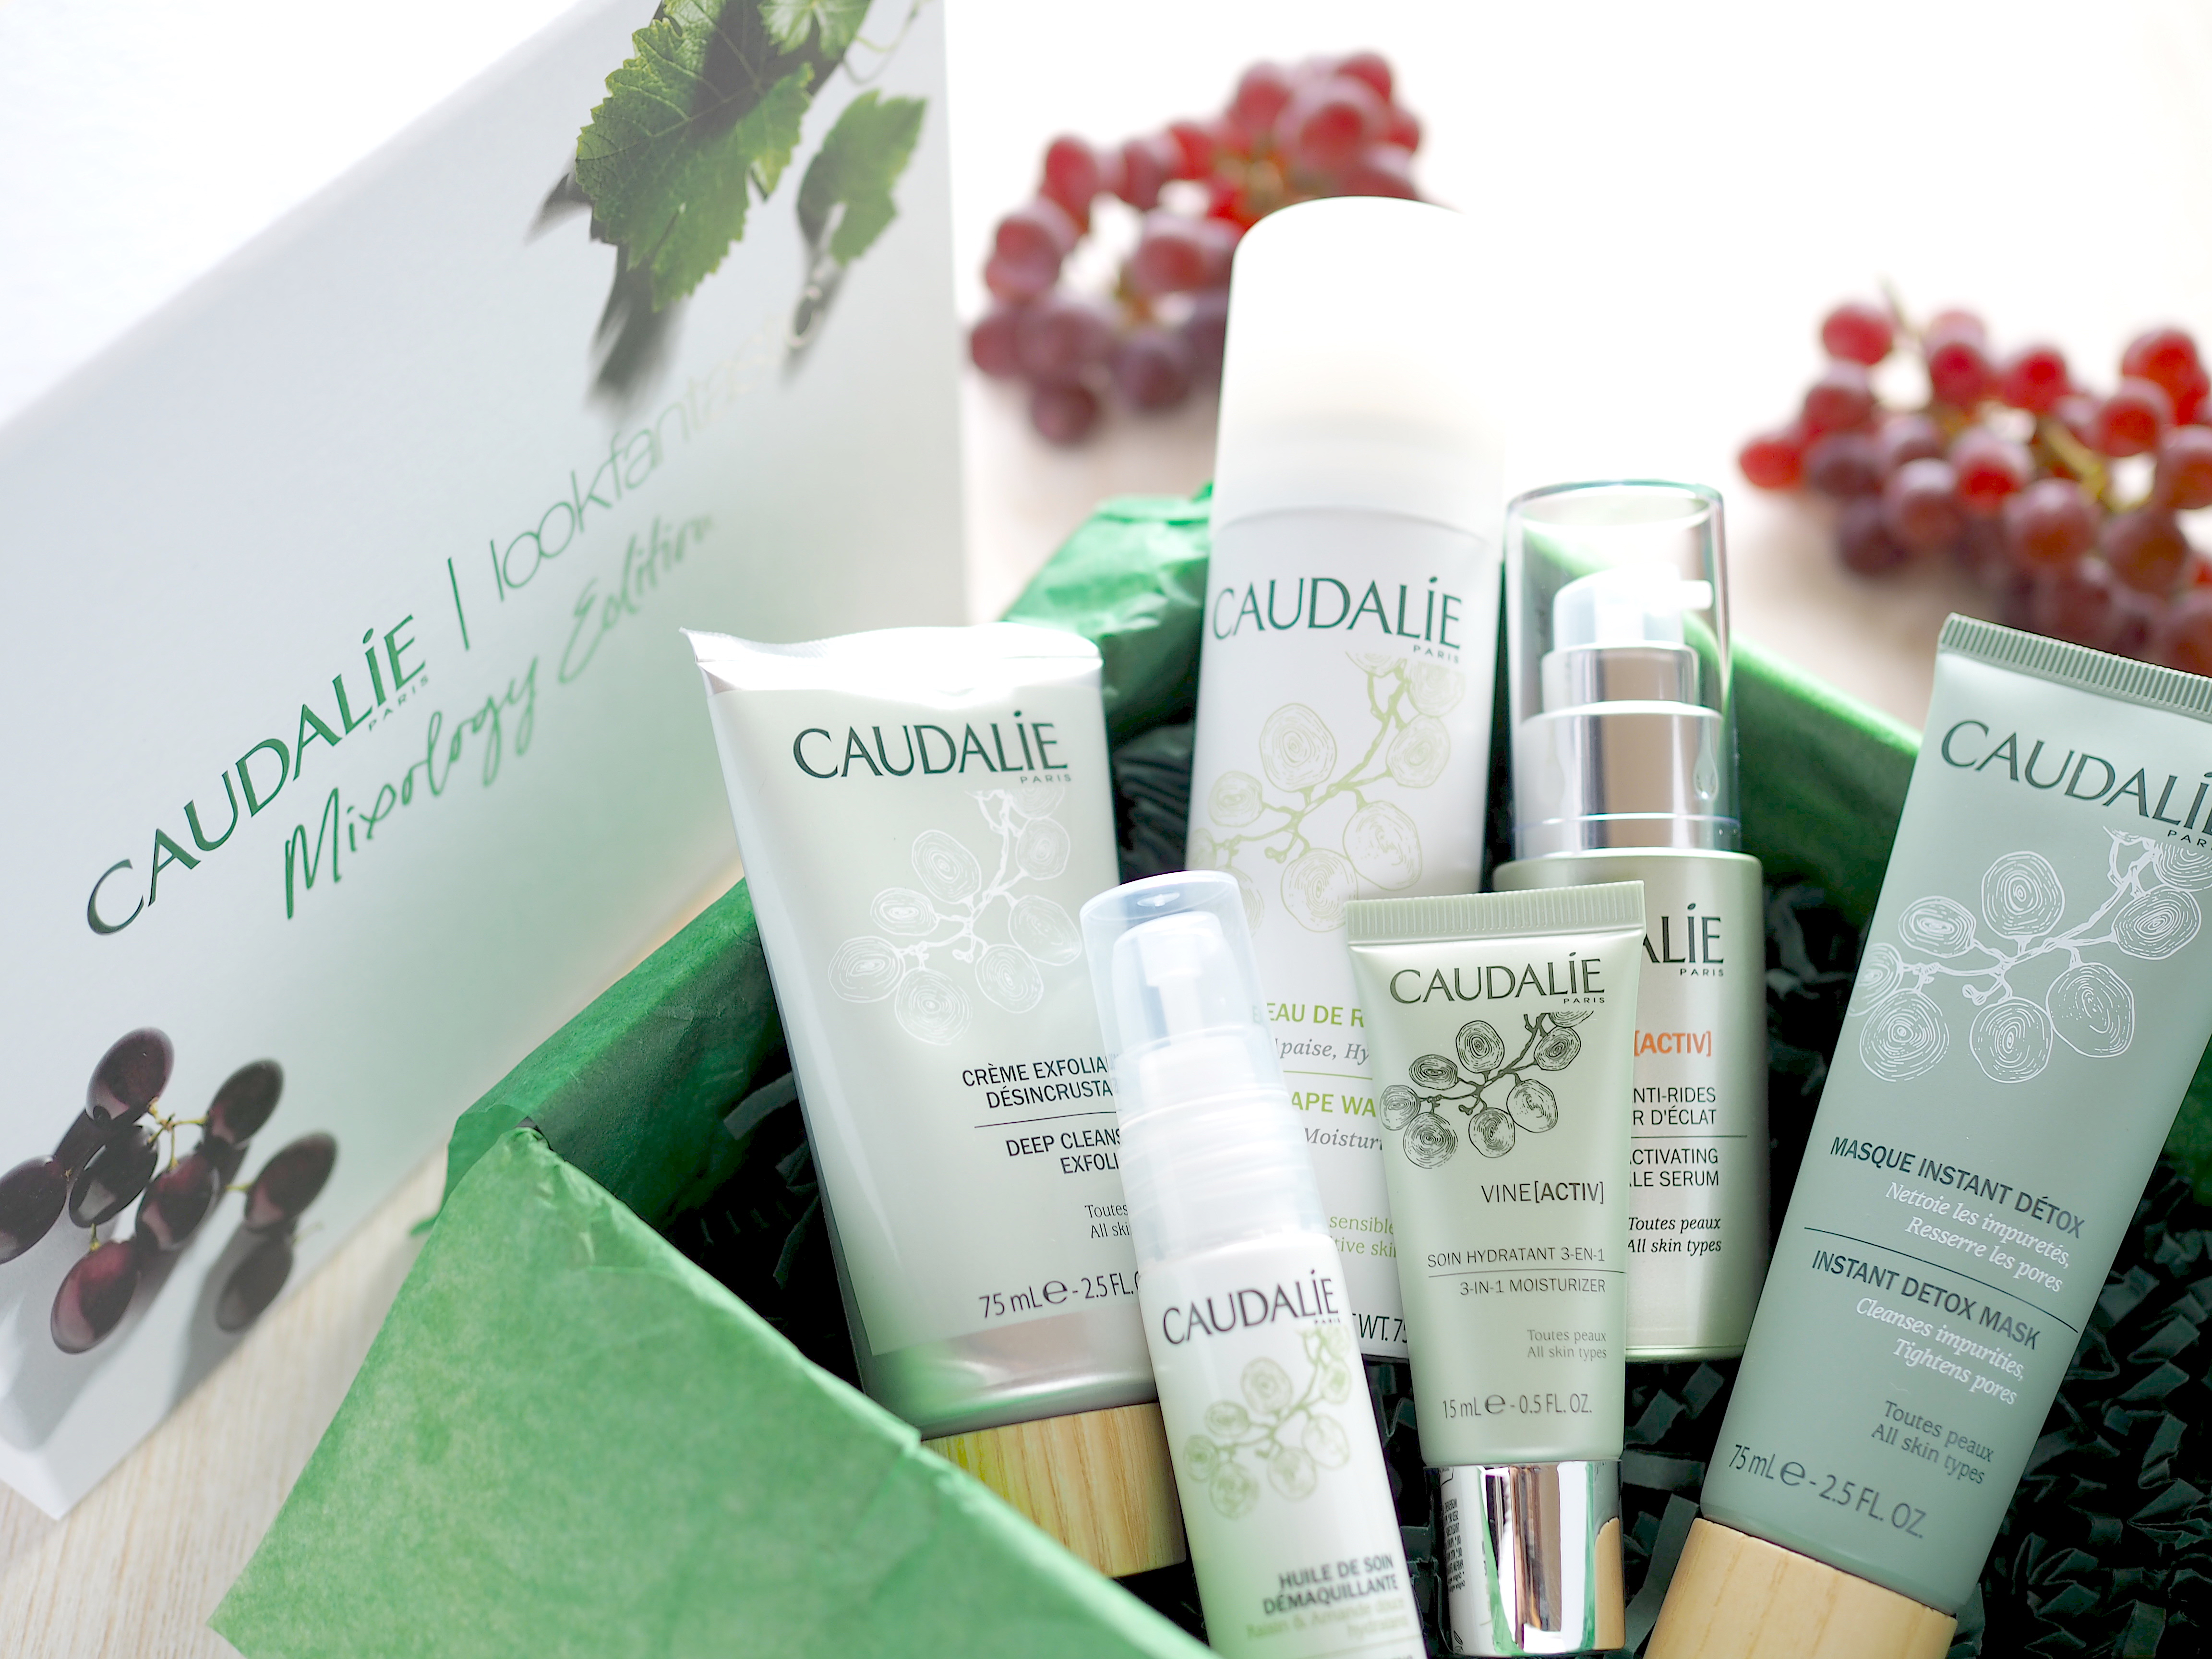 LookfantasticとCaudalieの限定ビューティーボックス